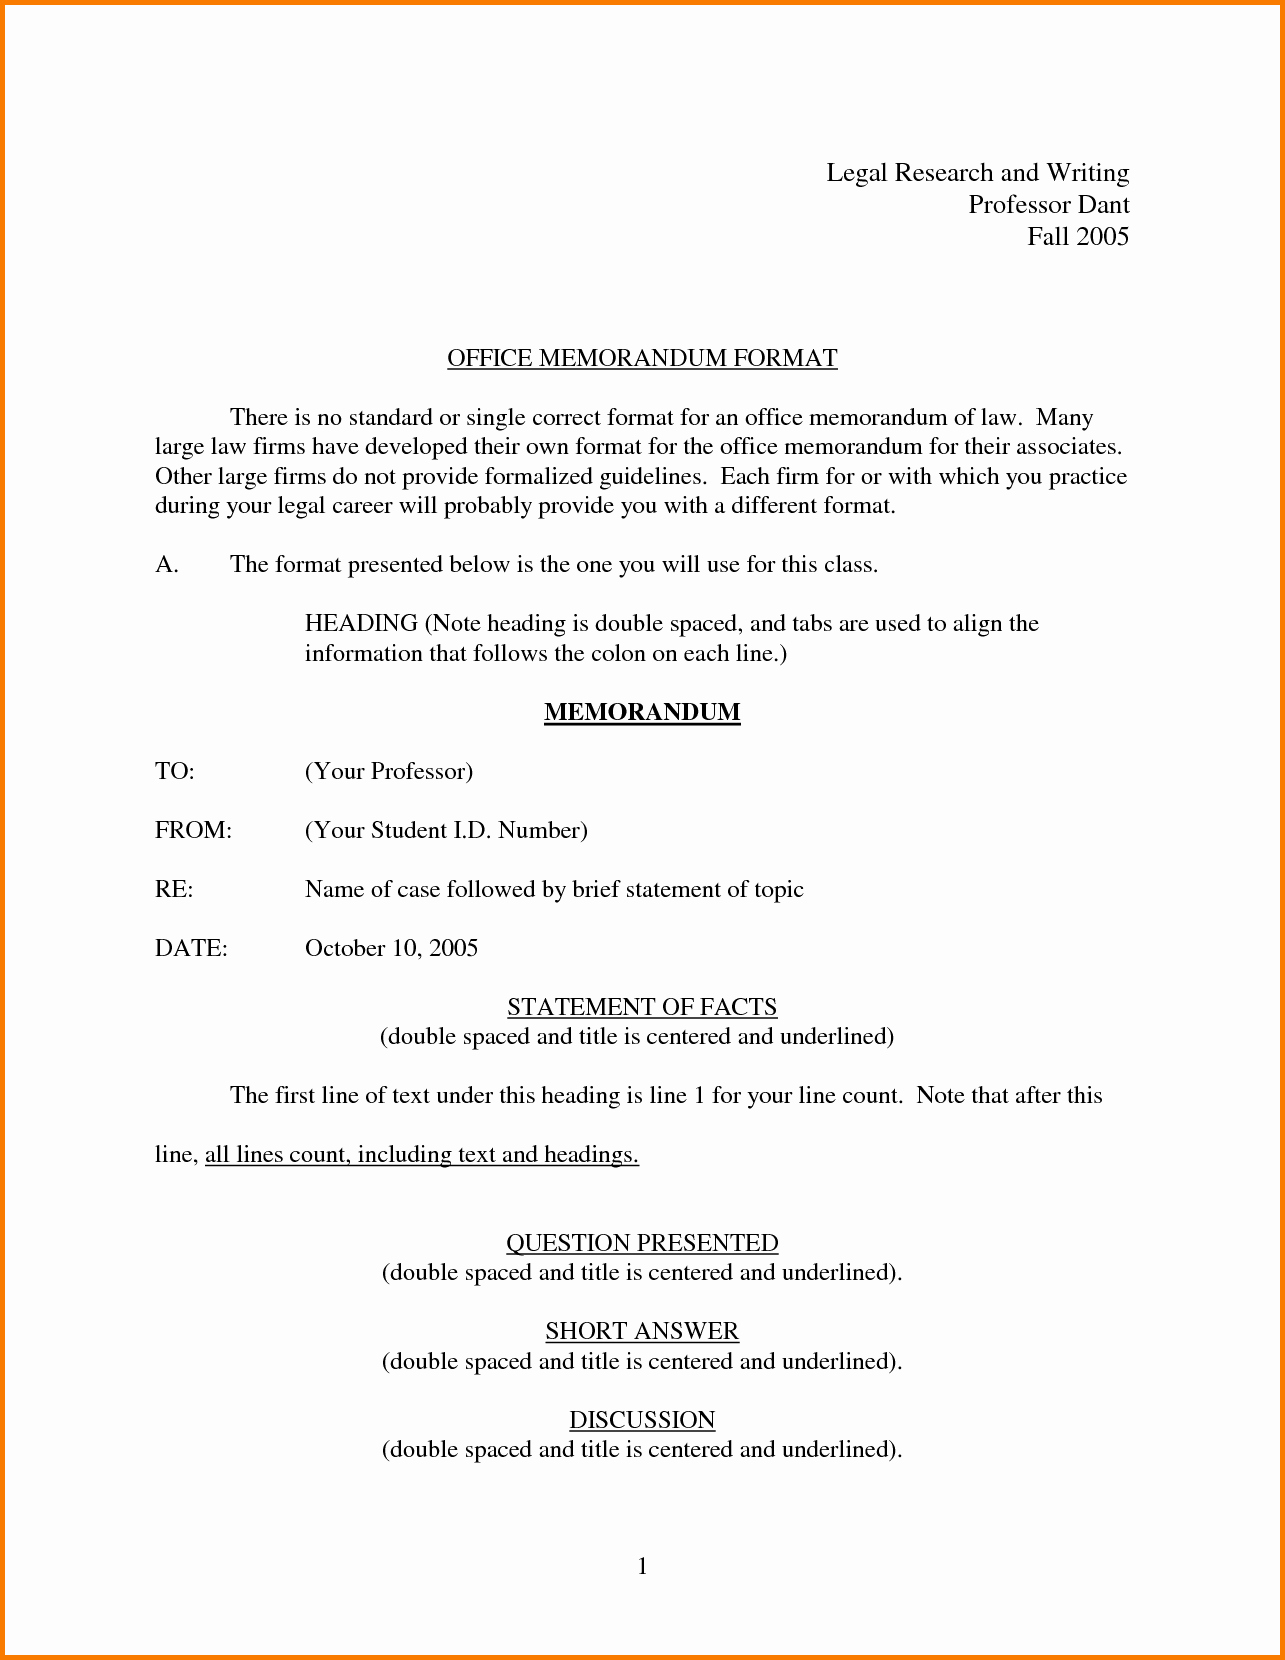 Legal Memo Template Microsoft Word Awesome 3 Interoffice Legal Memo Template